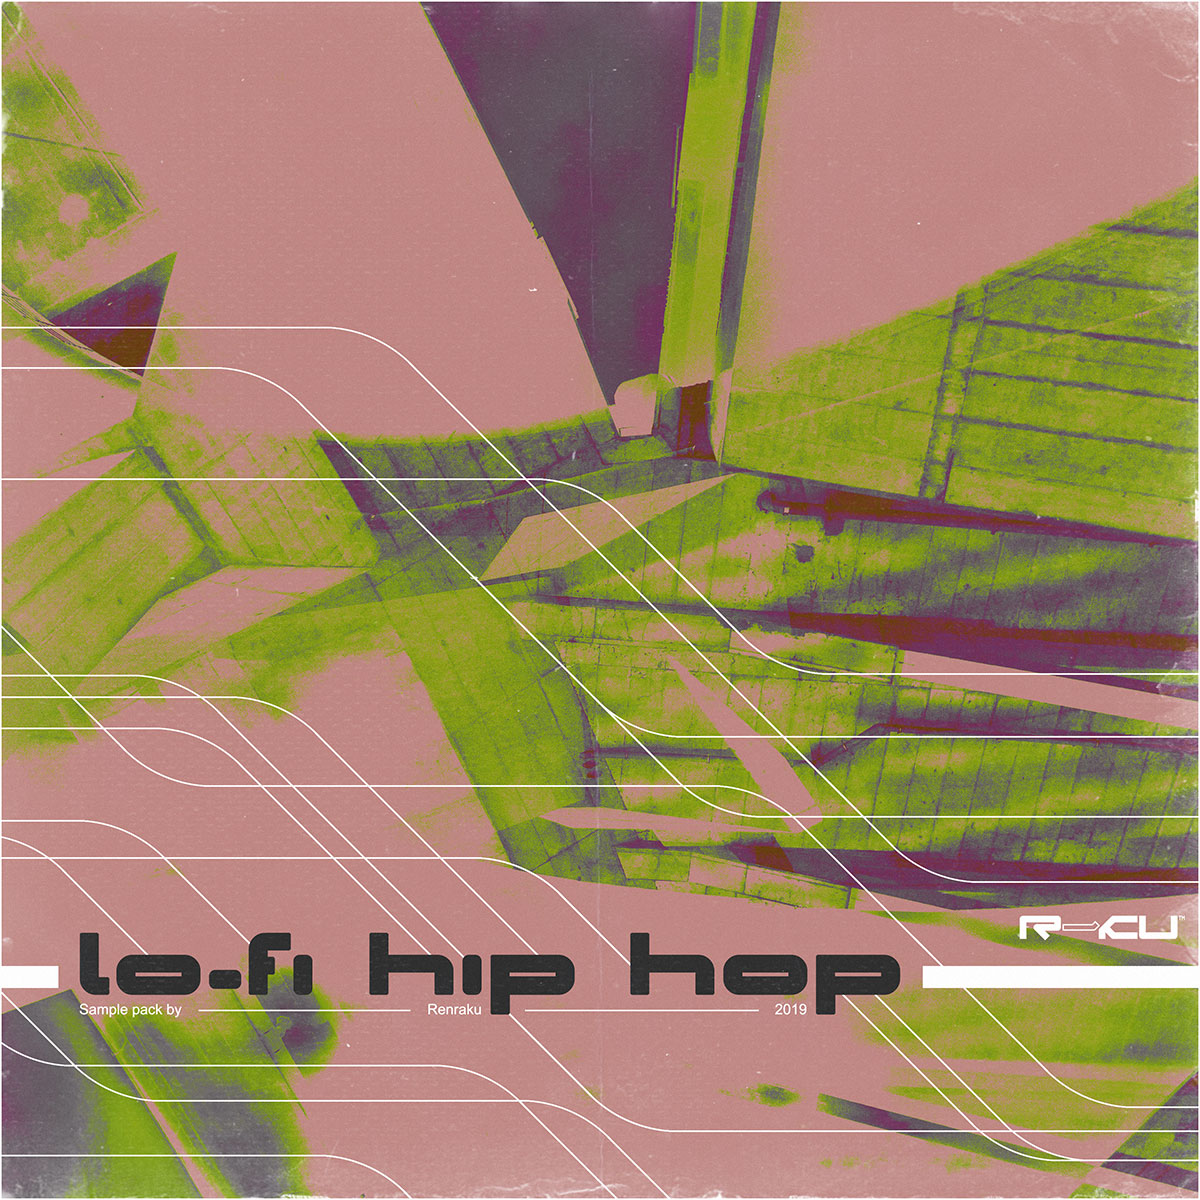 Free Sample Pack – Lo-fi Hip Hop